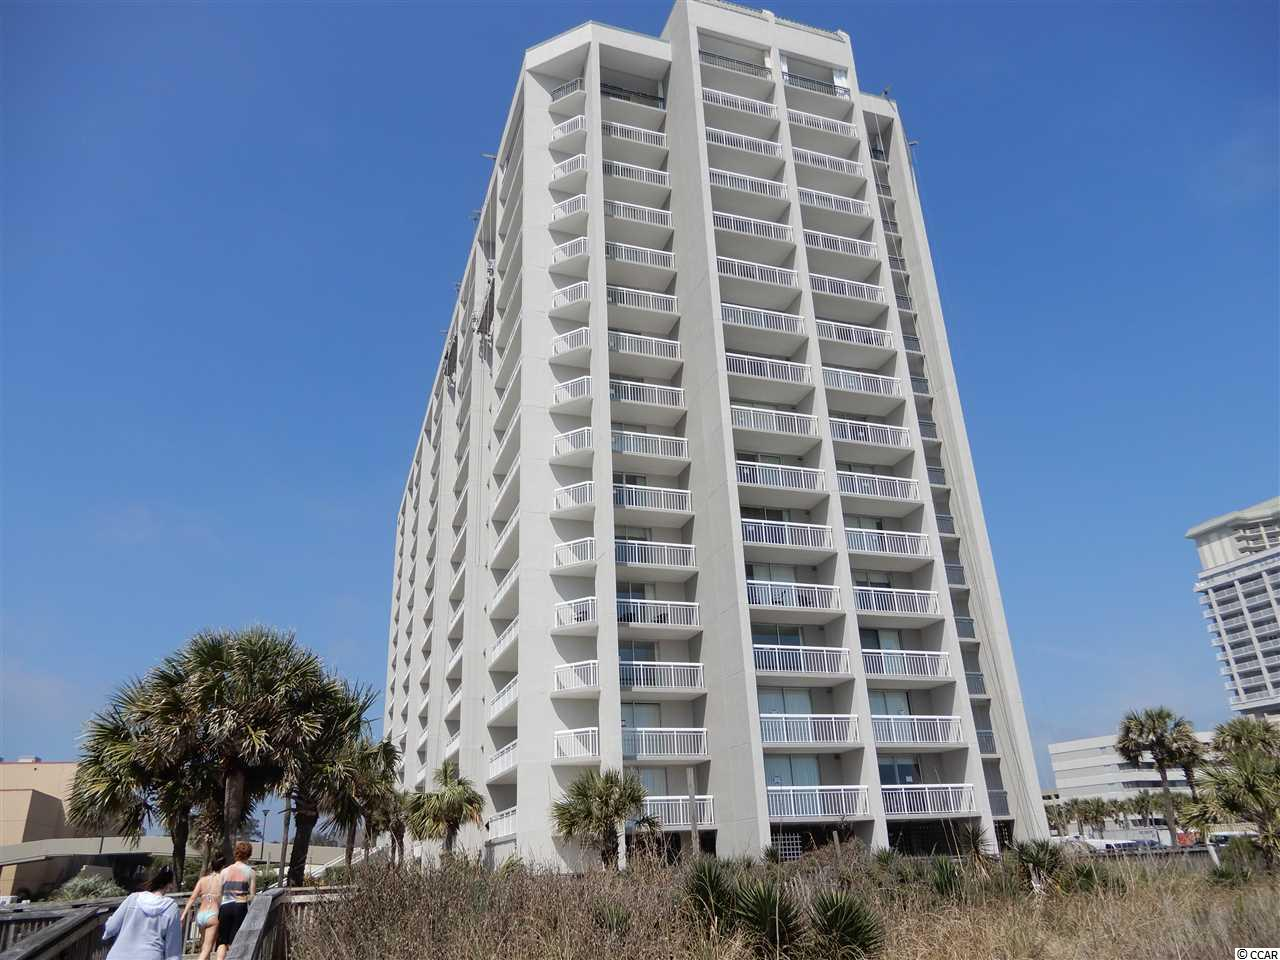 Ocean View Condo in Kingston Plantation - South Hamp : Myrtle Beach South Carolina